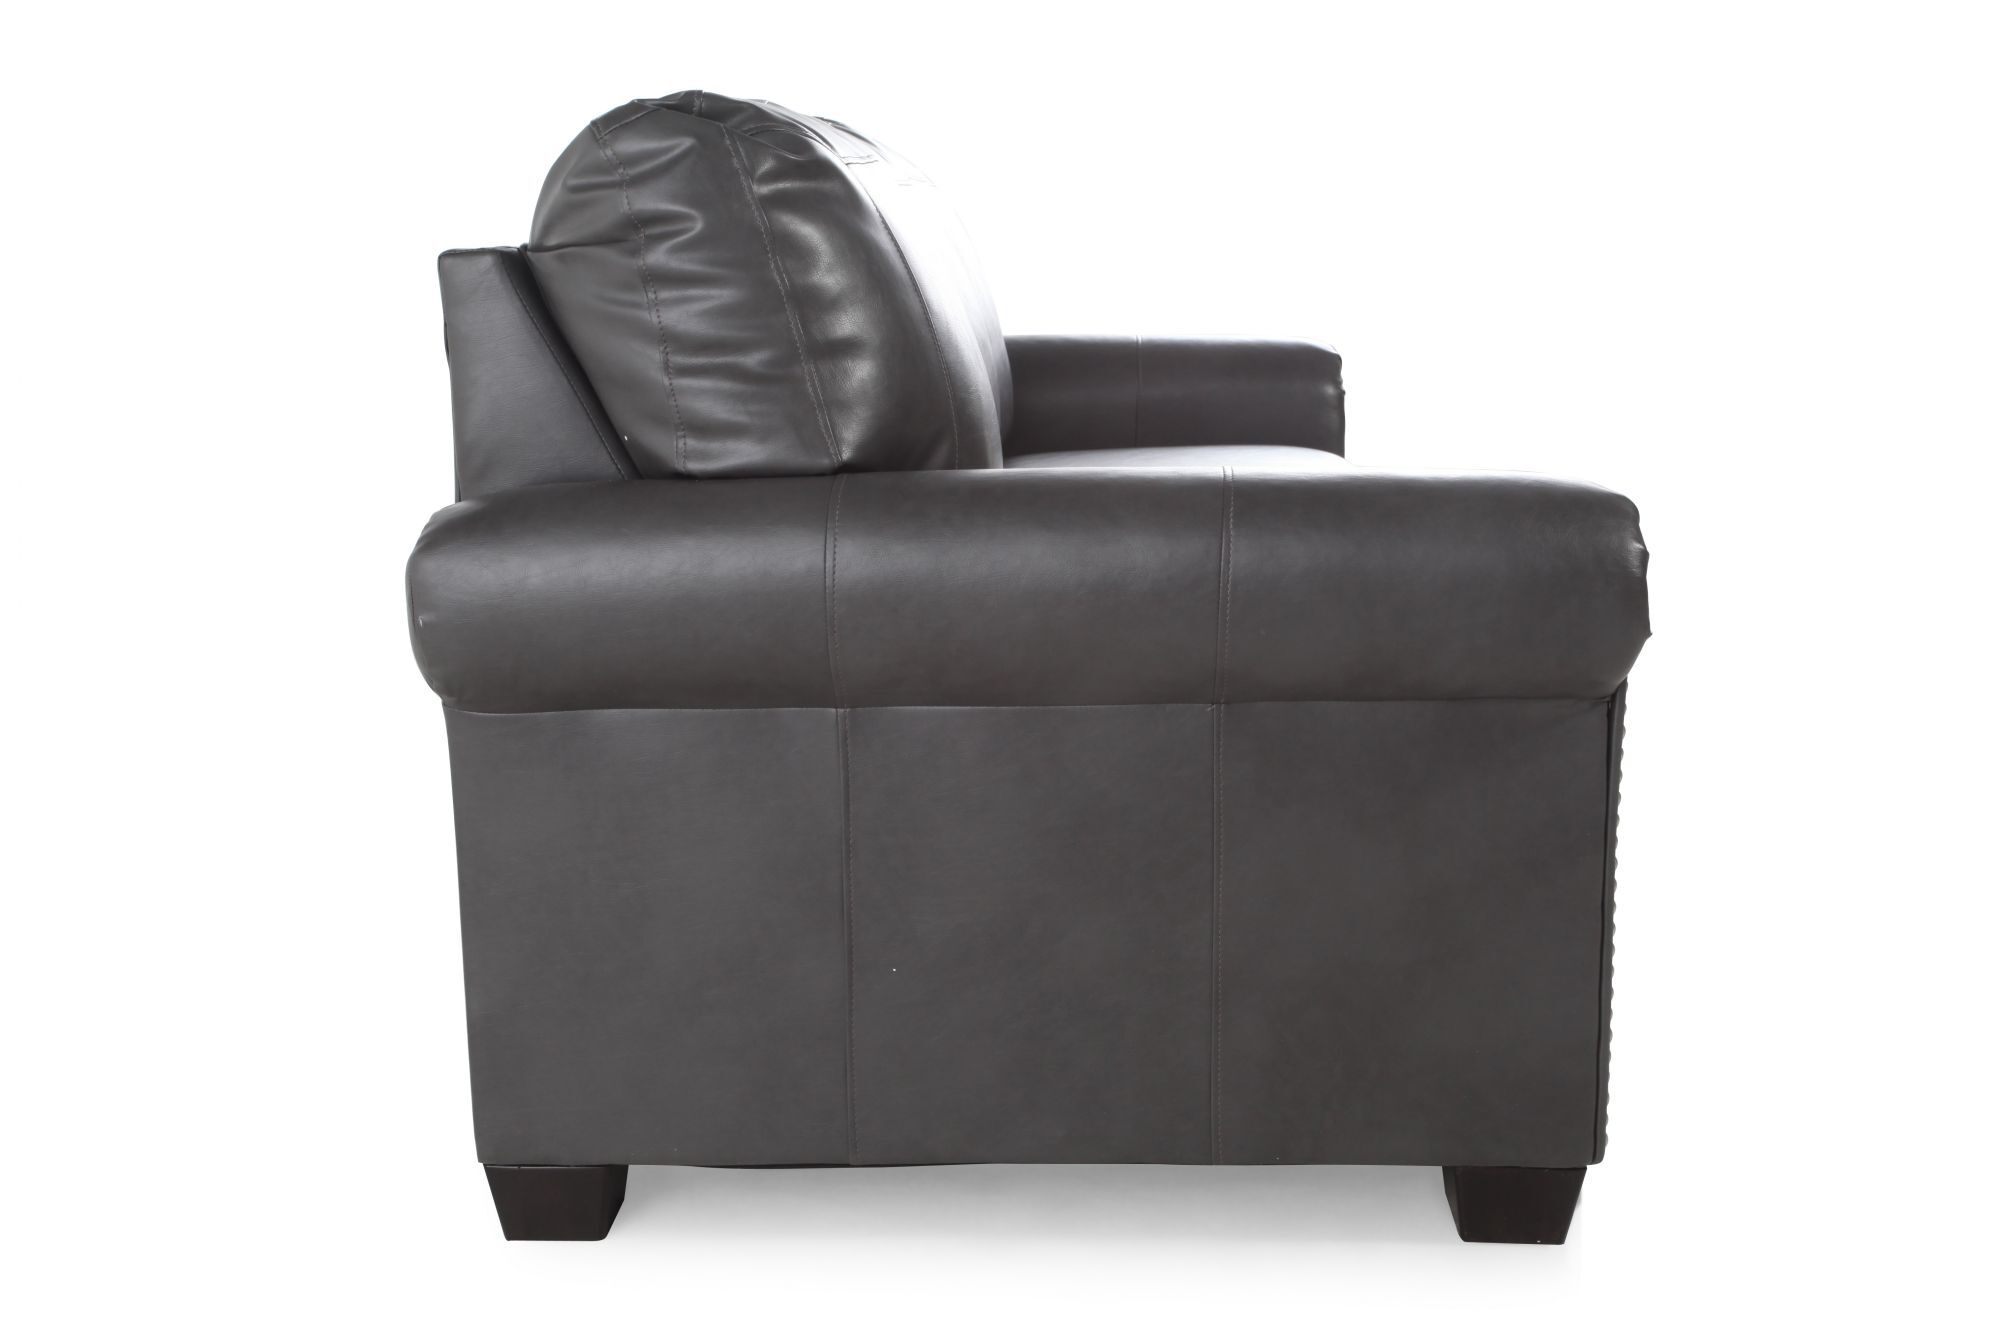 leather sleeper sofa with nailheads pottery barn buchanan review nailhead accented 78 mathis brothers furniture